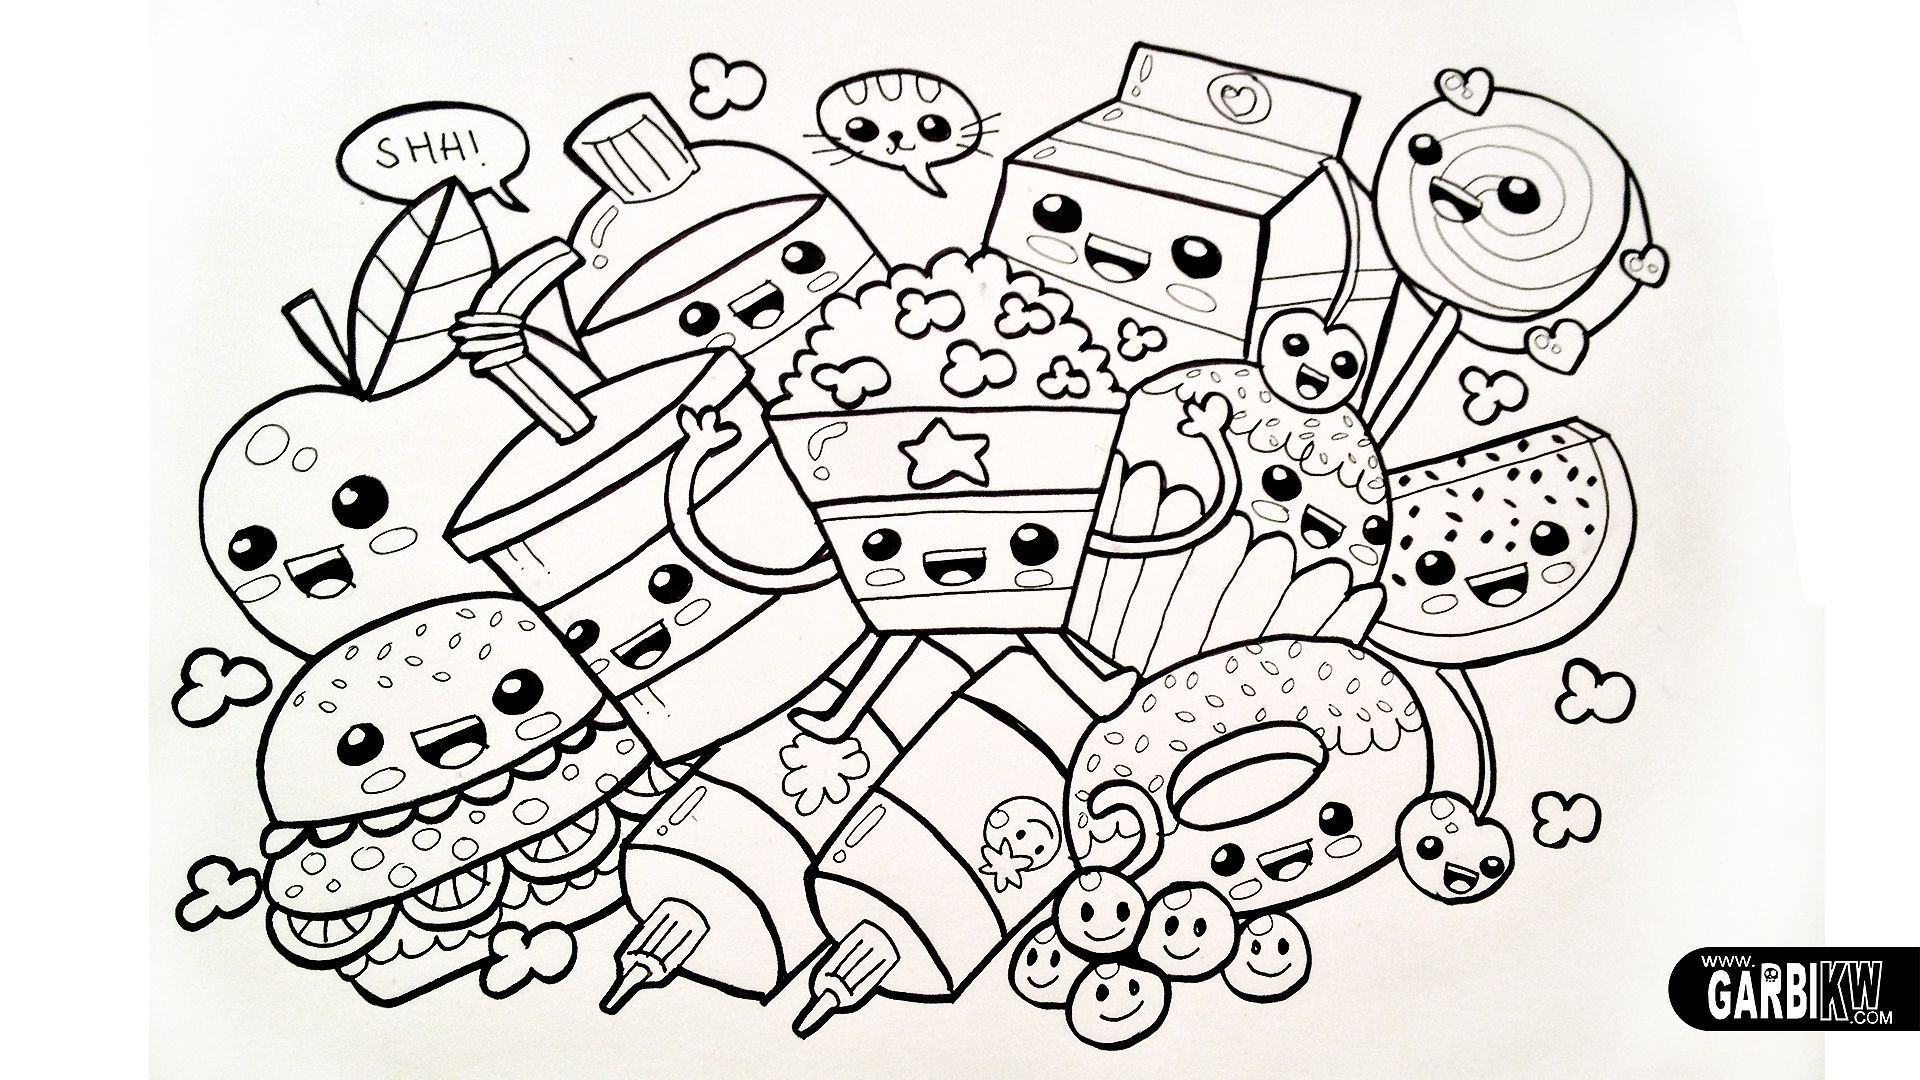 Download Or Print This Amazing Coloring Page Cute Kawaii Food Coloring Pages Kawaii Chibi In 2020 Unicorn Coloring Pages Animal Coloring Books Animal Coloring Pages